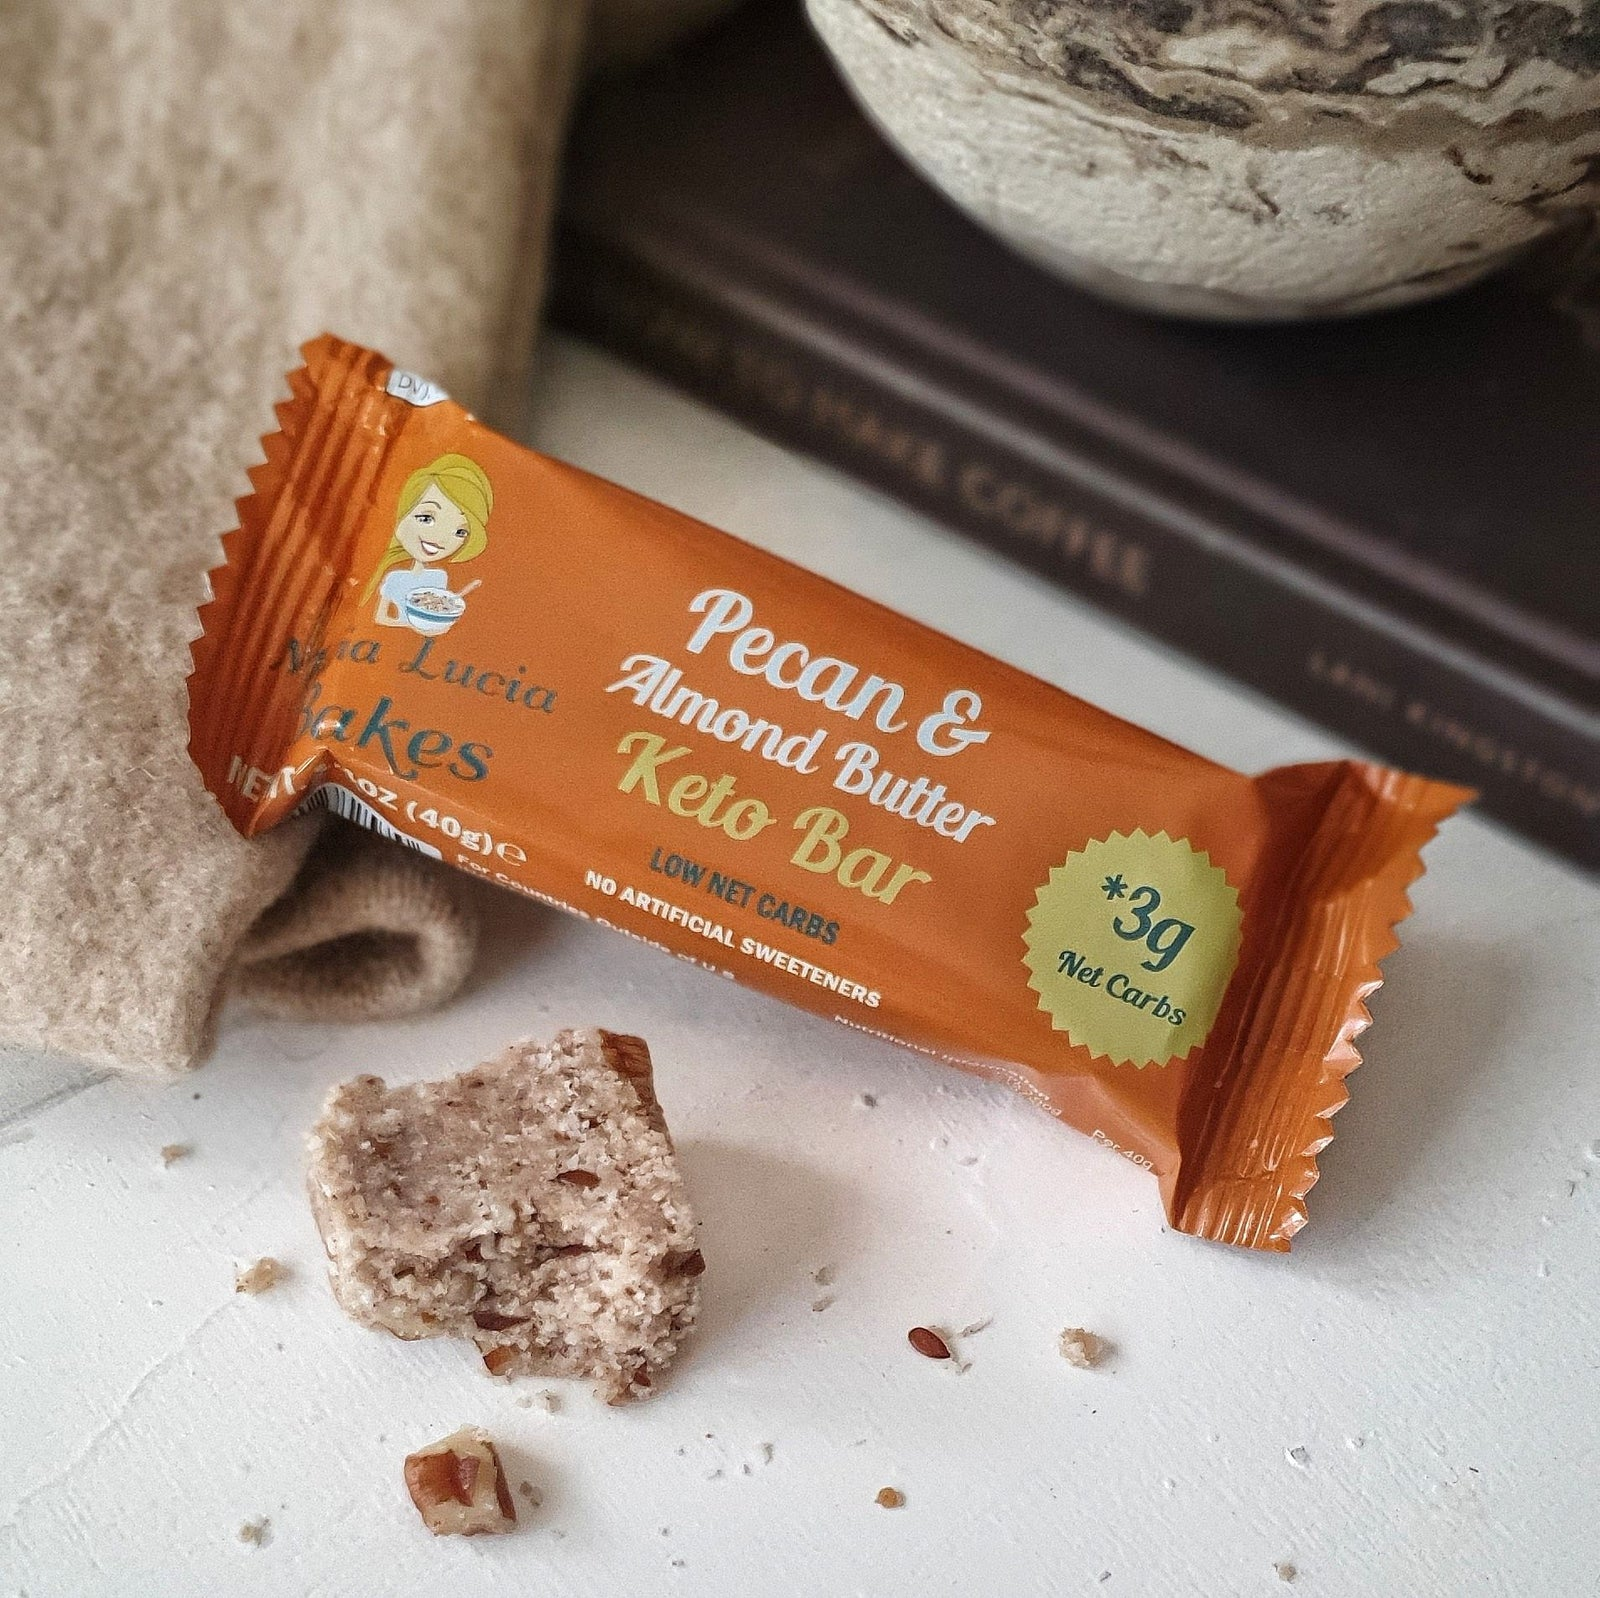 Special Offer 4 x Maria Lucia's Keto Bars - Low Carb, Sugar Free Keto Snacks - Pecan, Almond Butter & Coconut